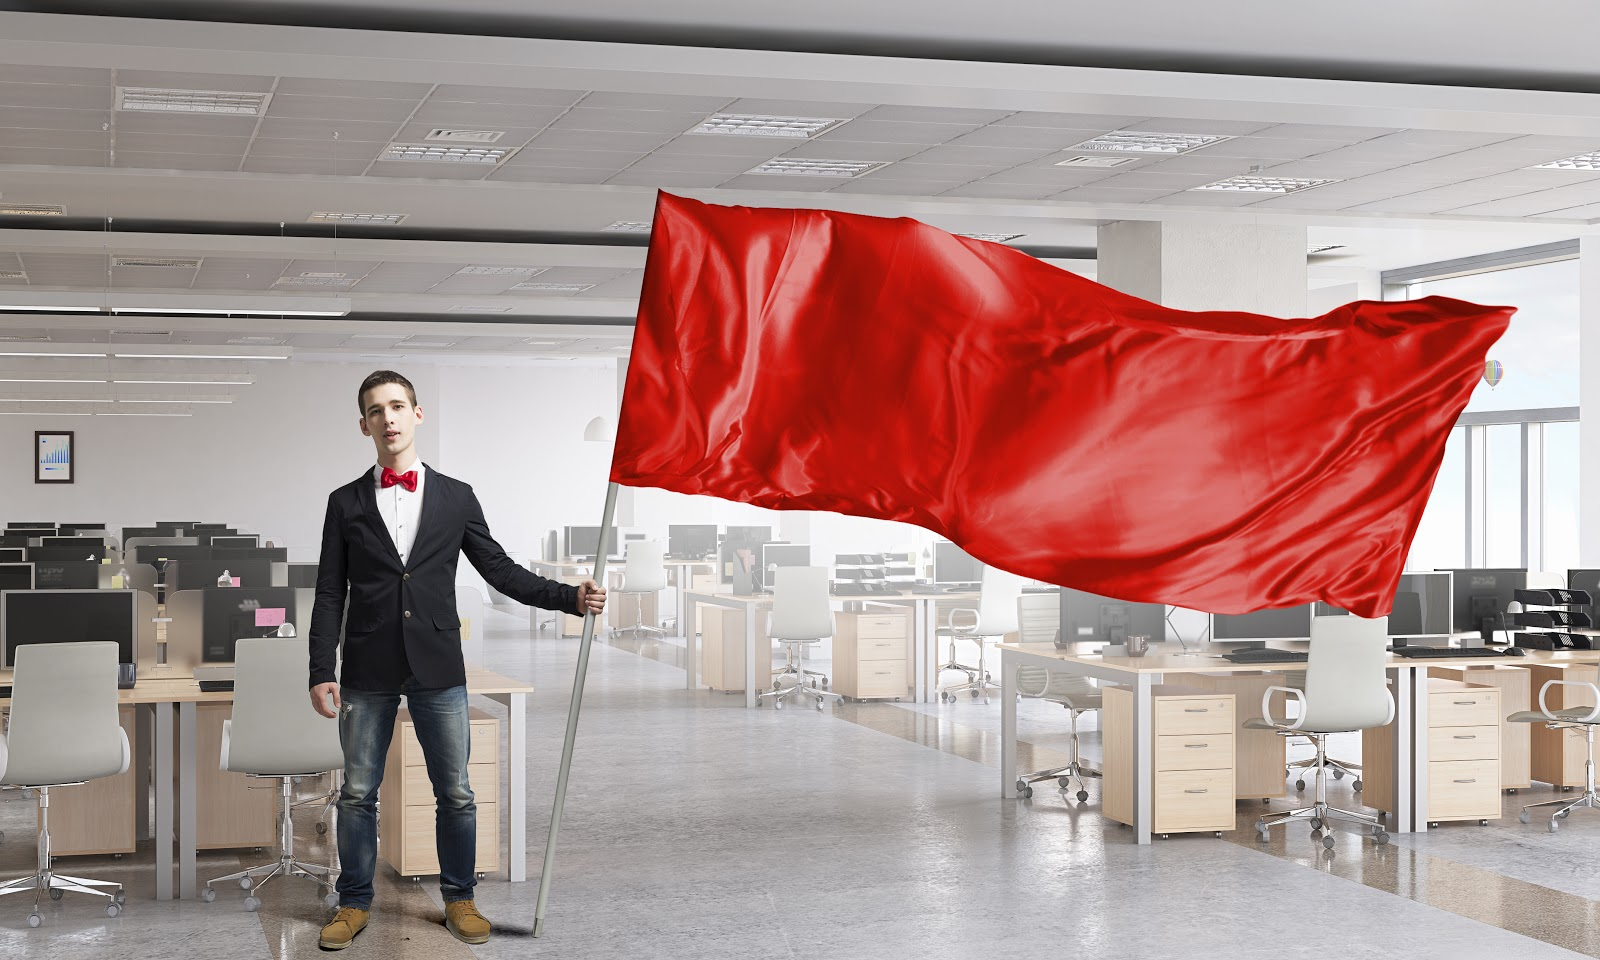 Man waving red flag in office